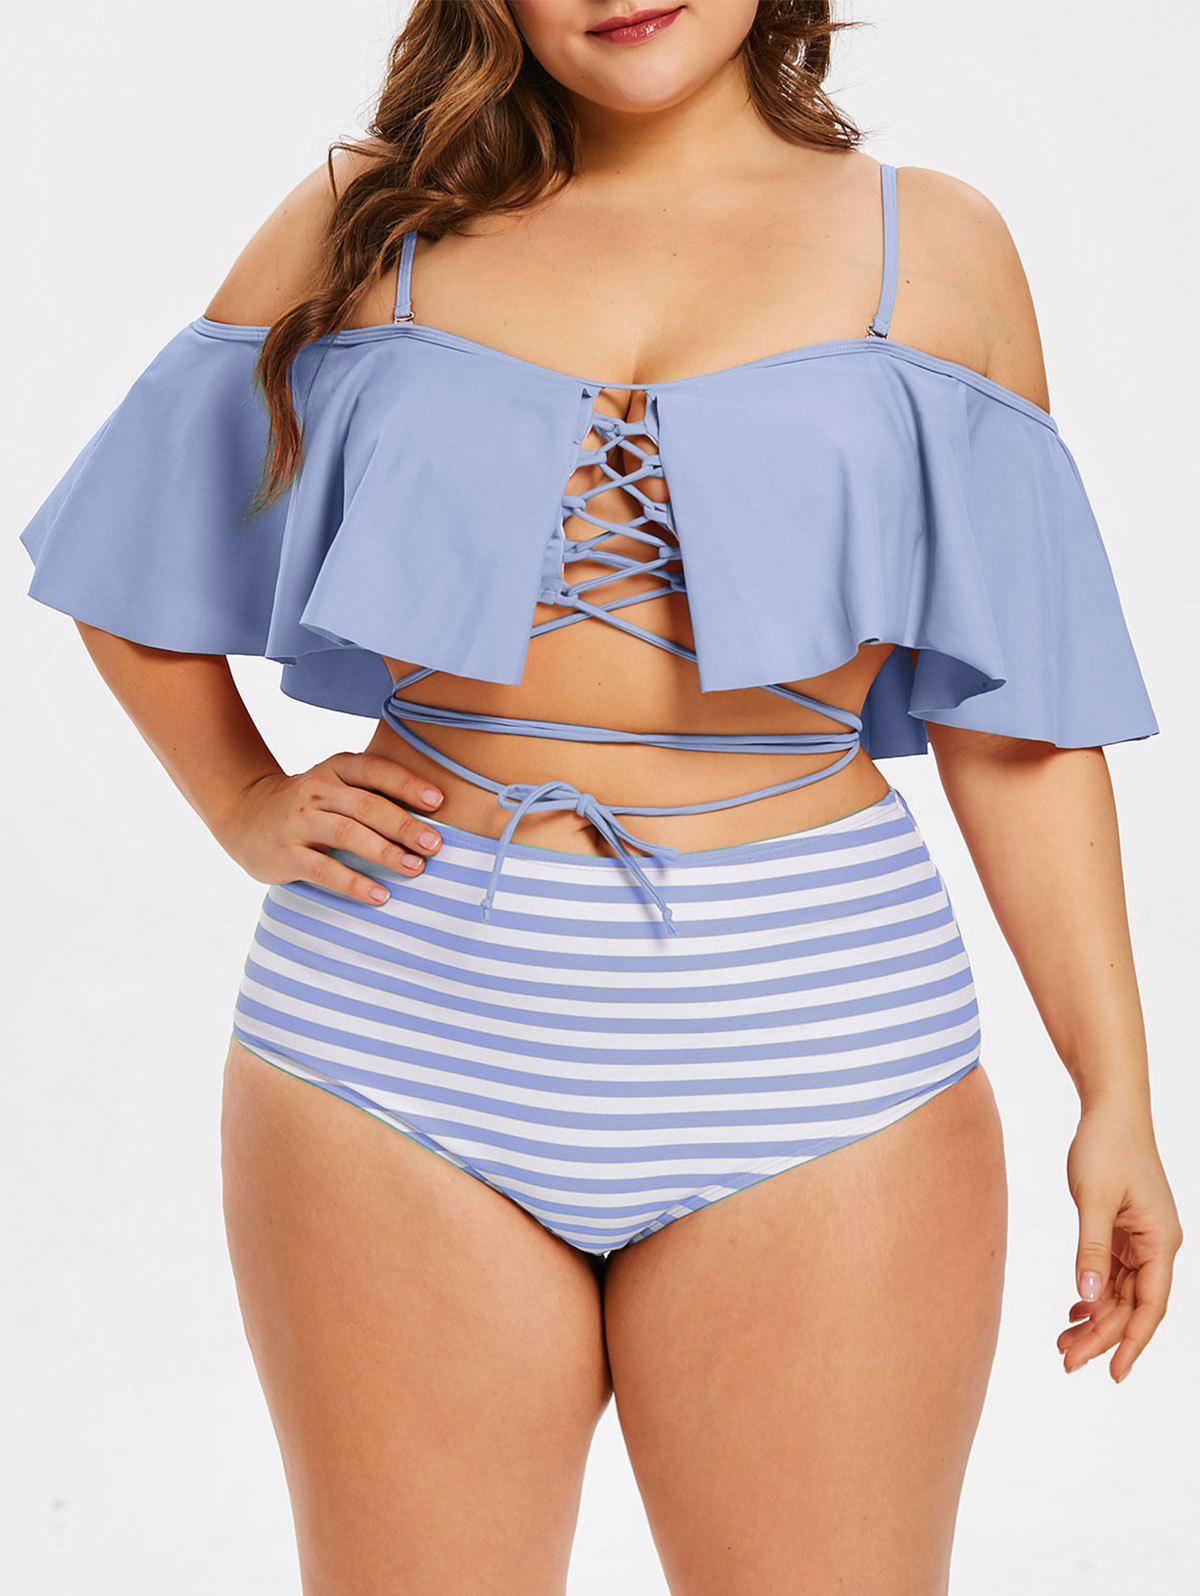 Plus Size Lace Up Striped Panel Bikini Set - LAVENDER BLUE 2X